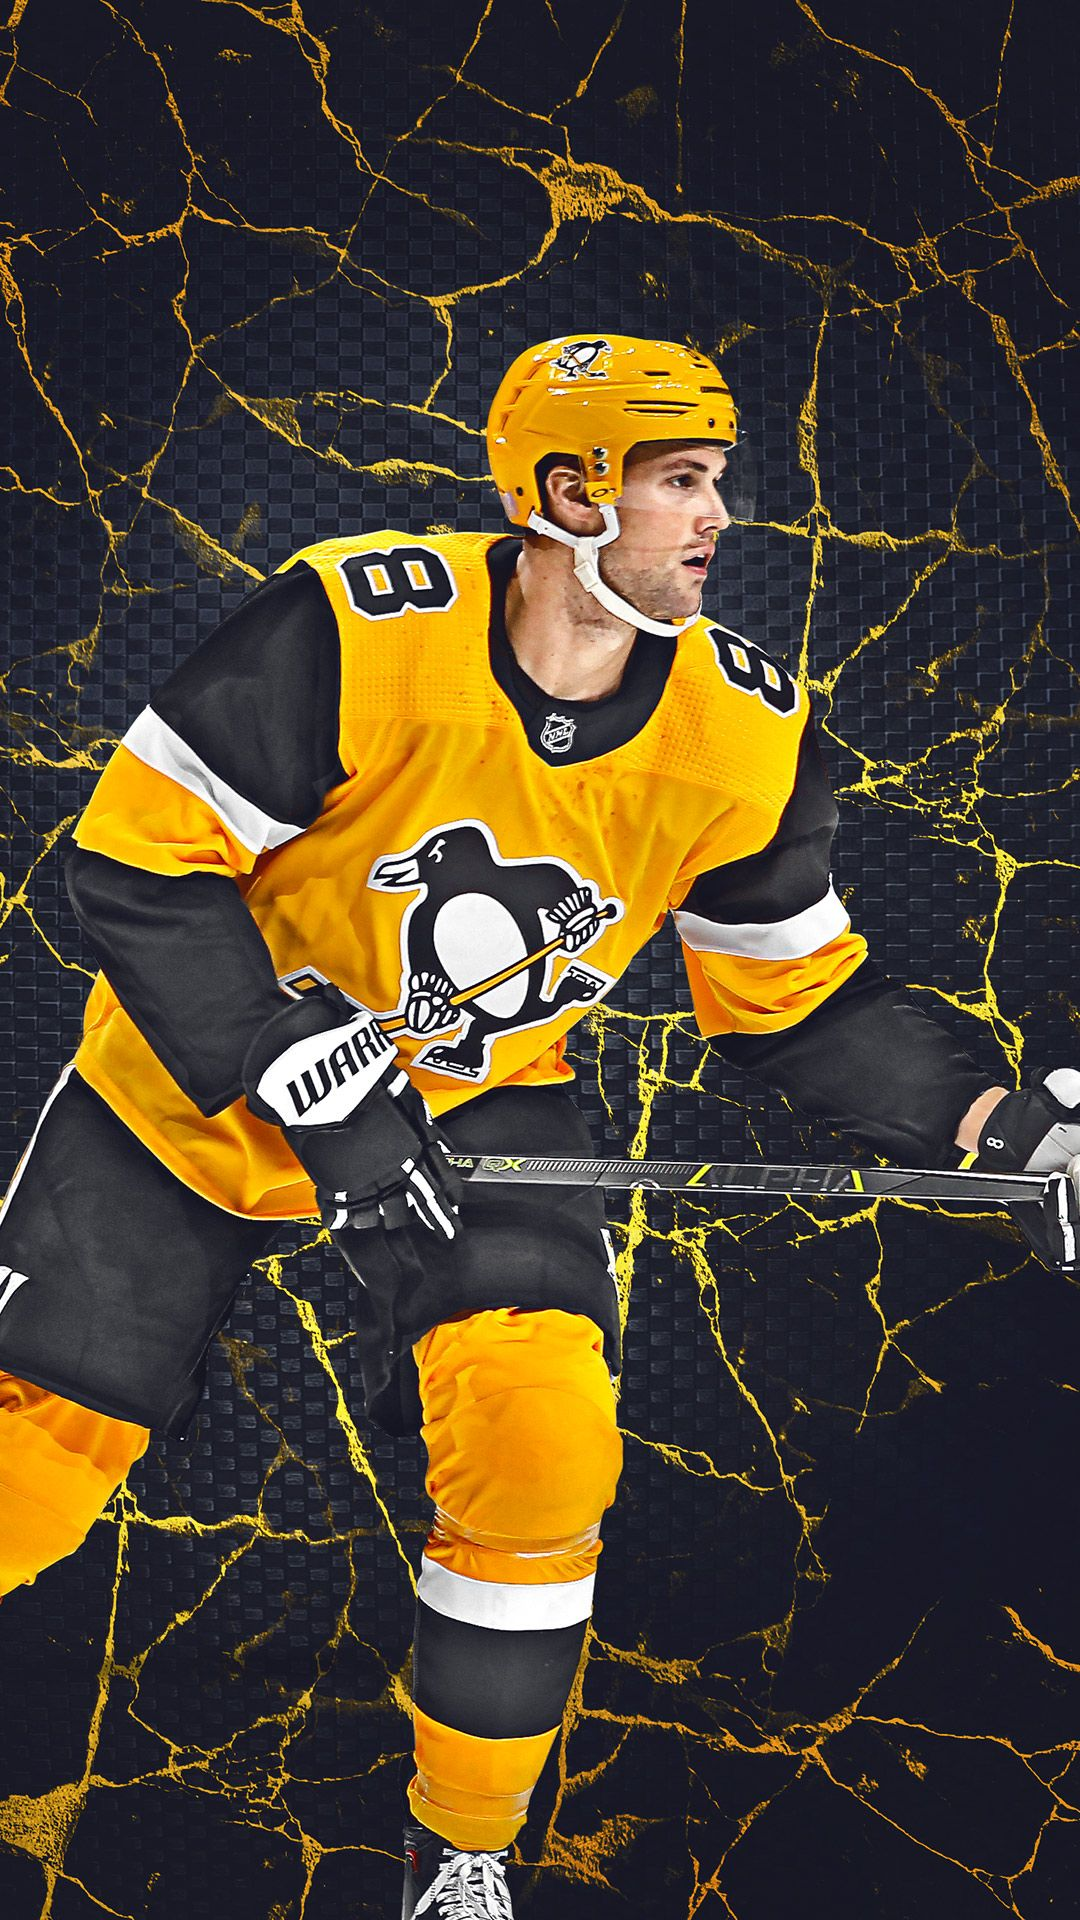 Wallpapers Pittsburgh Penguins In 2020 Pittsburgh Penguins Wallpaper Pittsburgh Hockey Pittsburgh Penquins